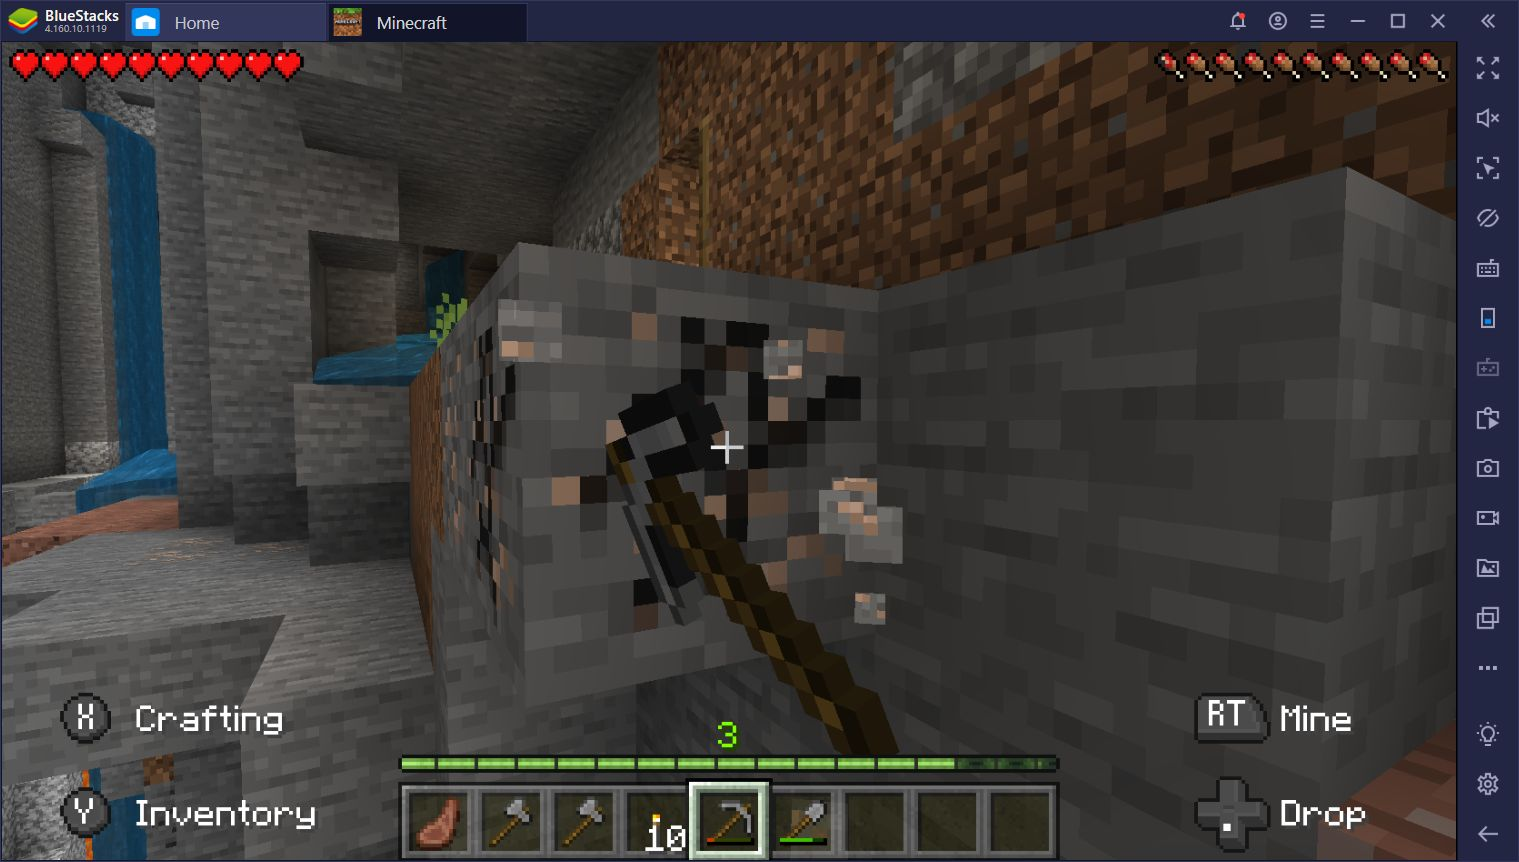 Mining in Minecraft - How to Gather Materials and Stay Safe in the Process